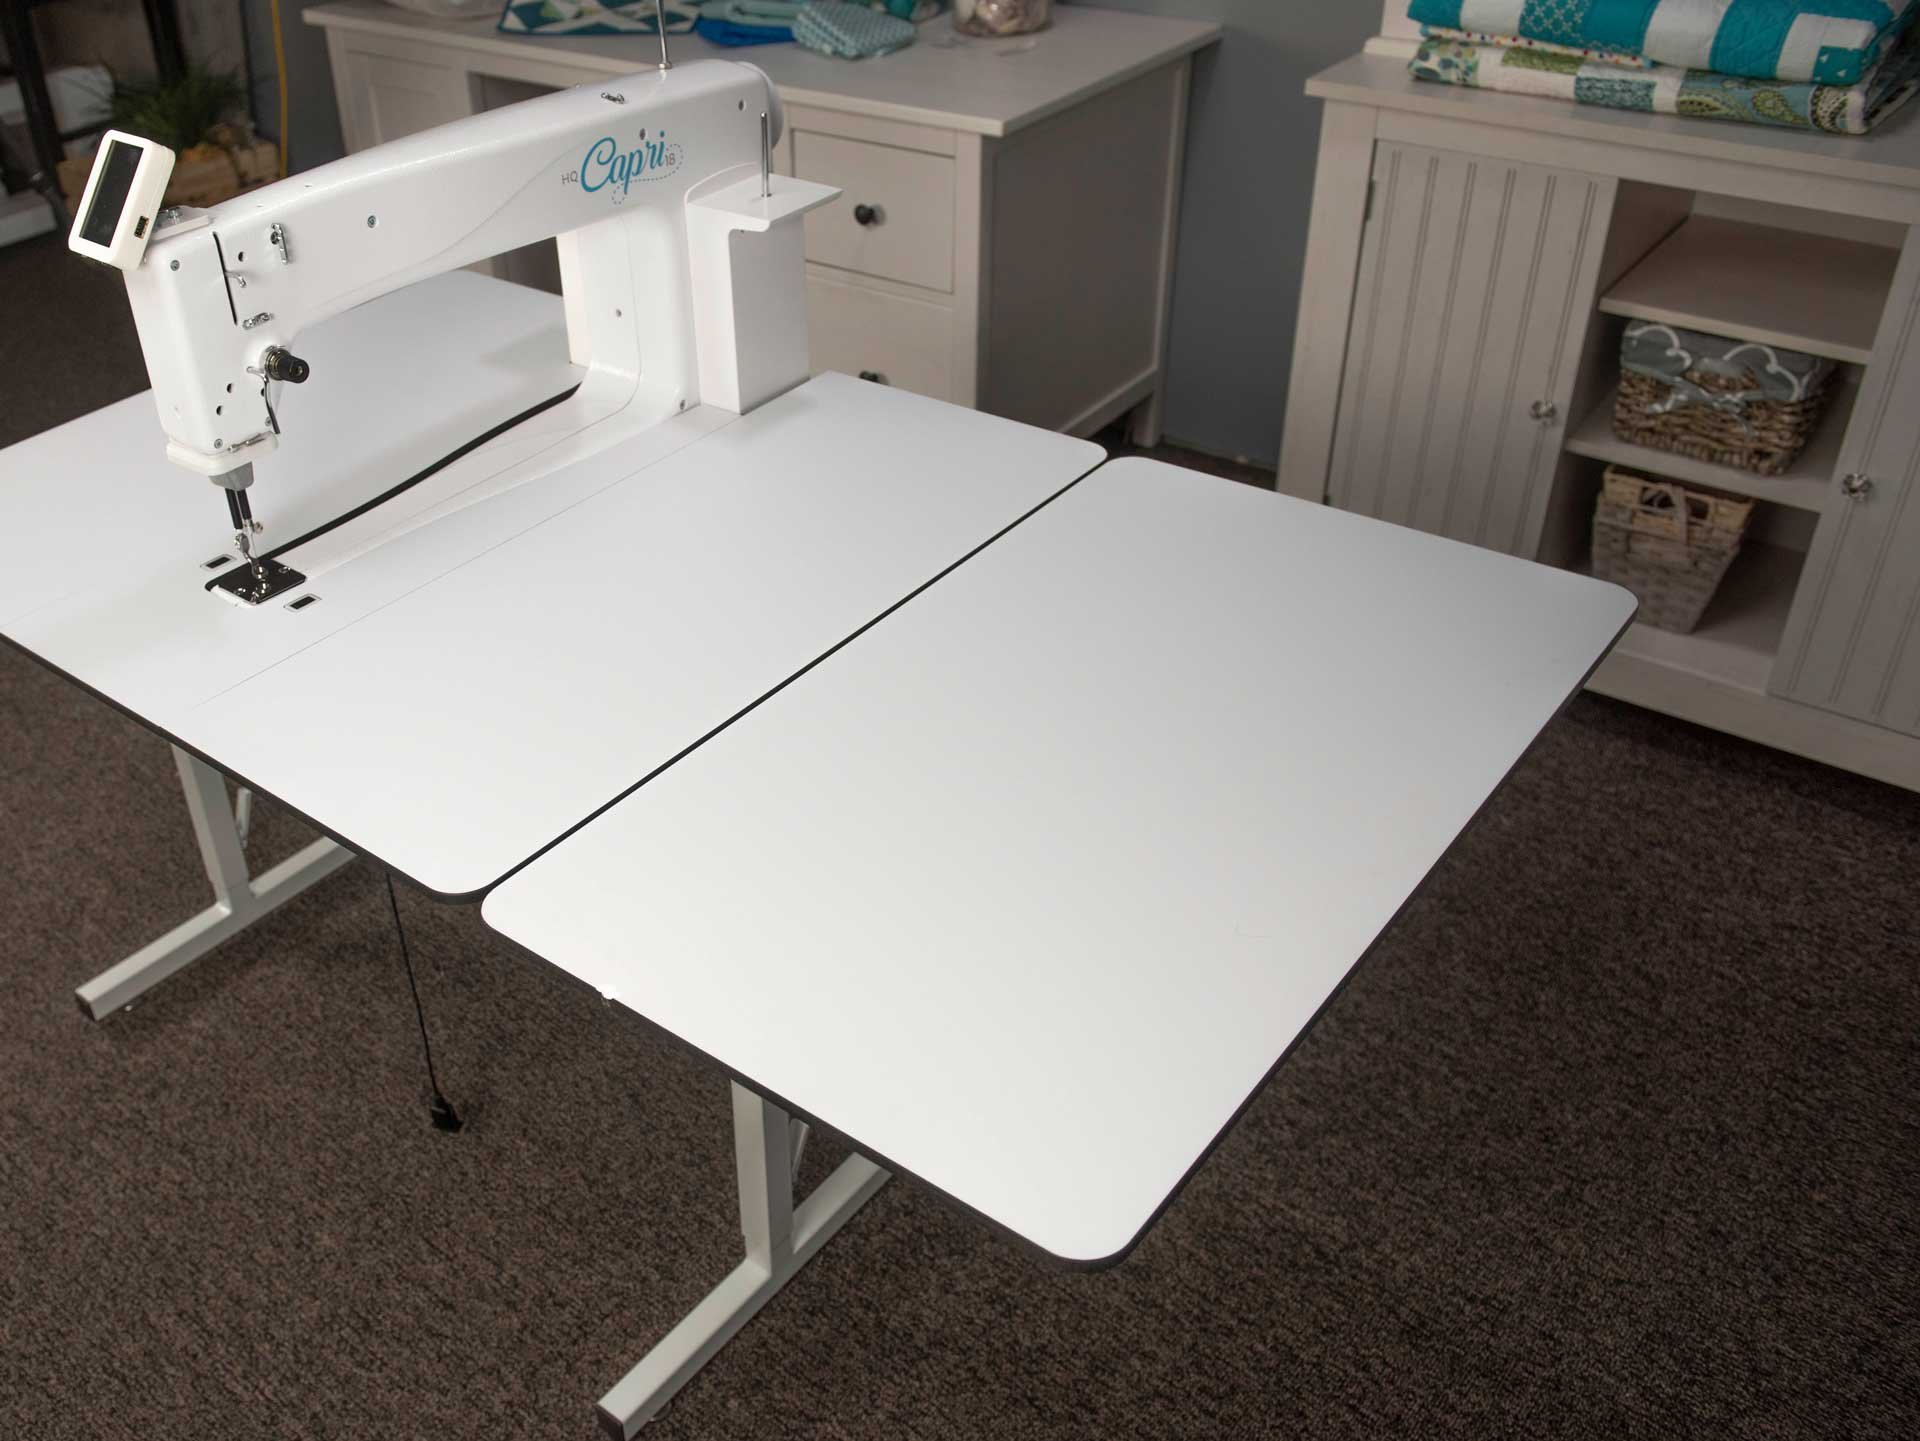 HQ InSight Table Side Extension 18 inch